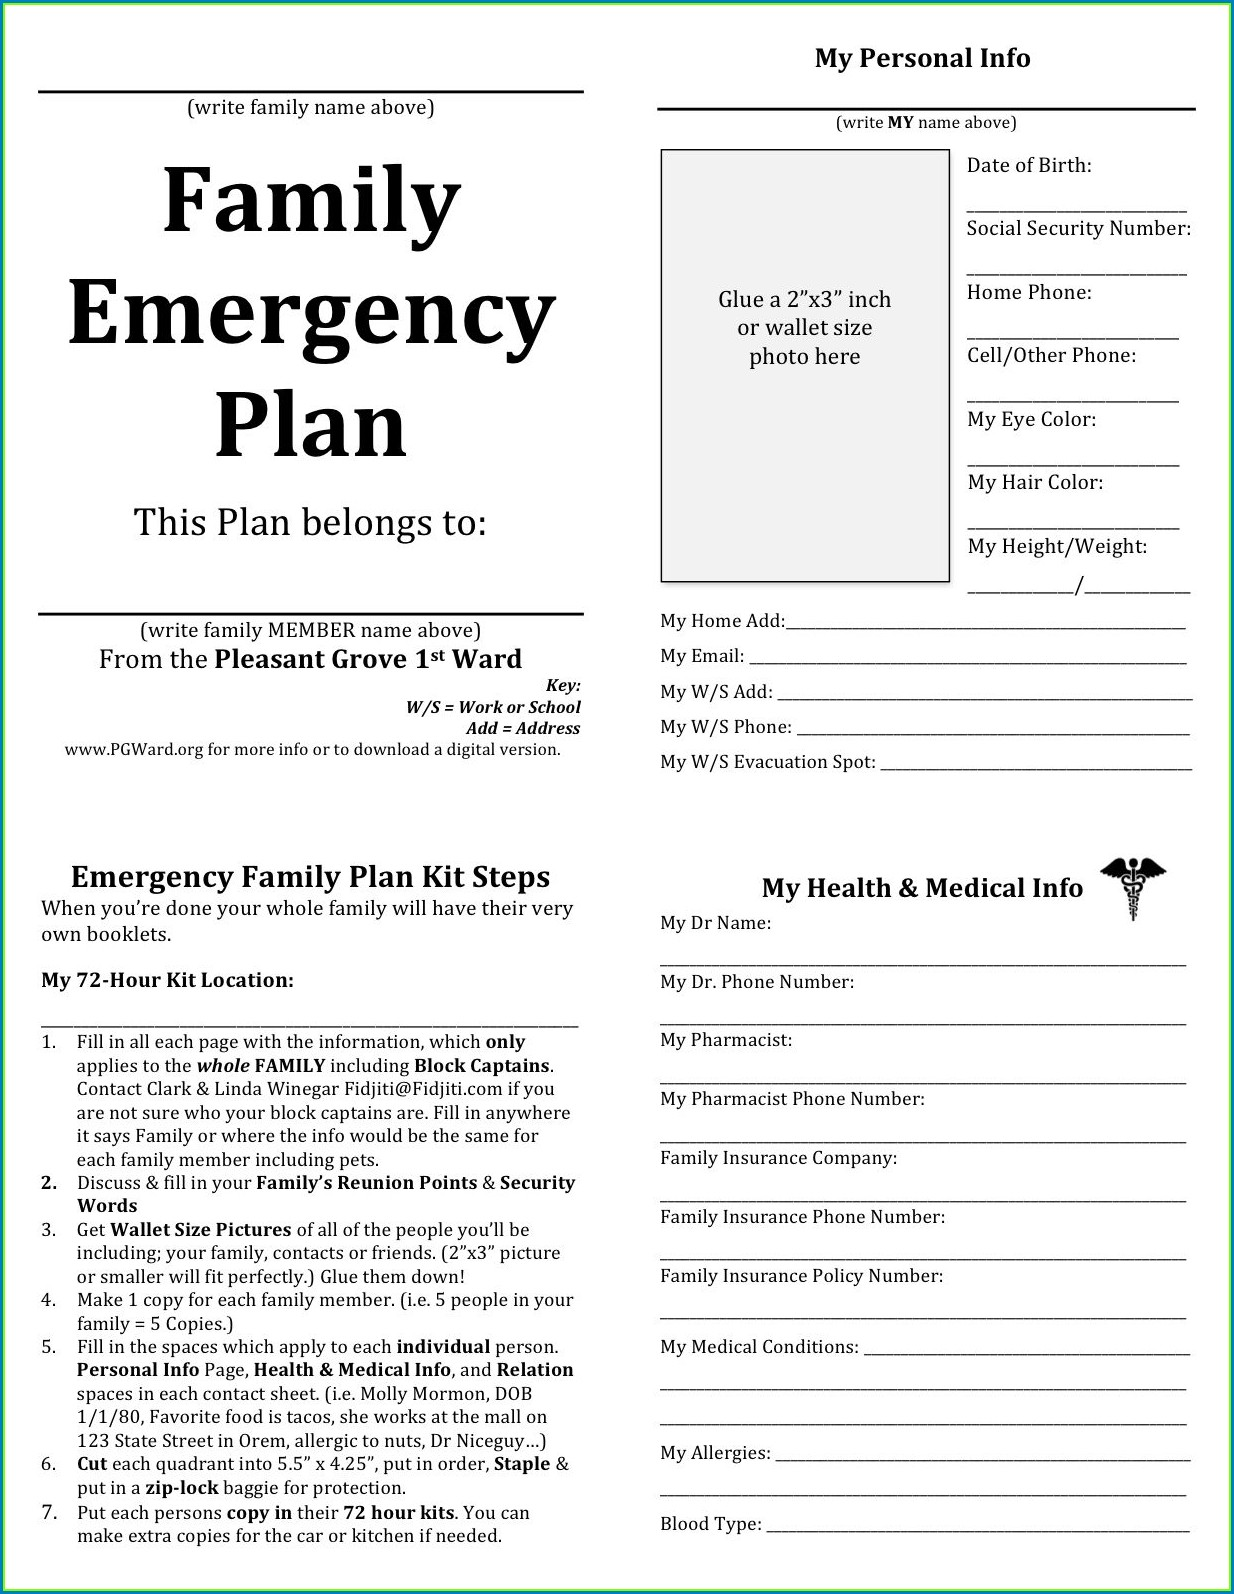 Child Safety Plan Worksheet